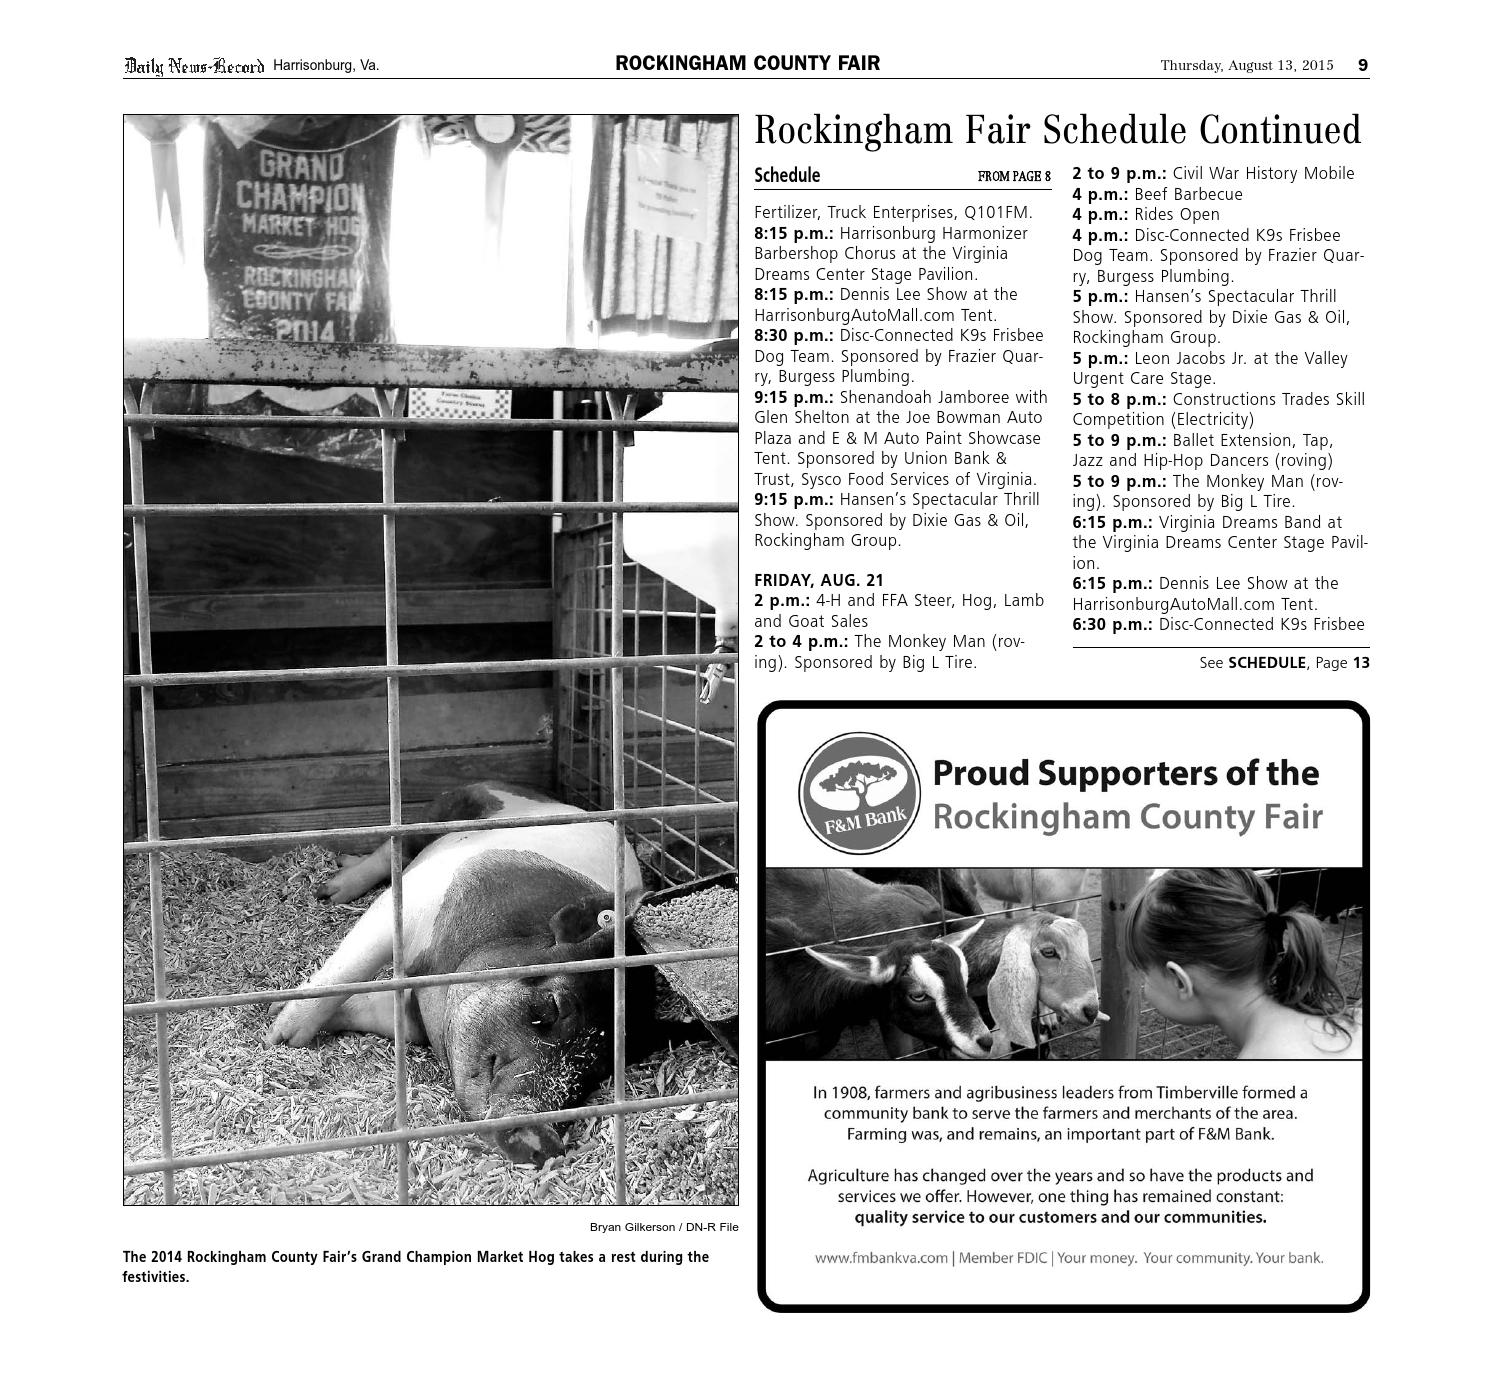 Rockingham County Fair By Daily News-Record